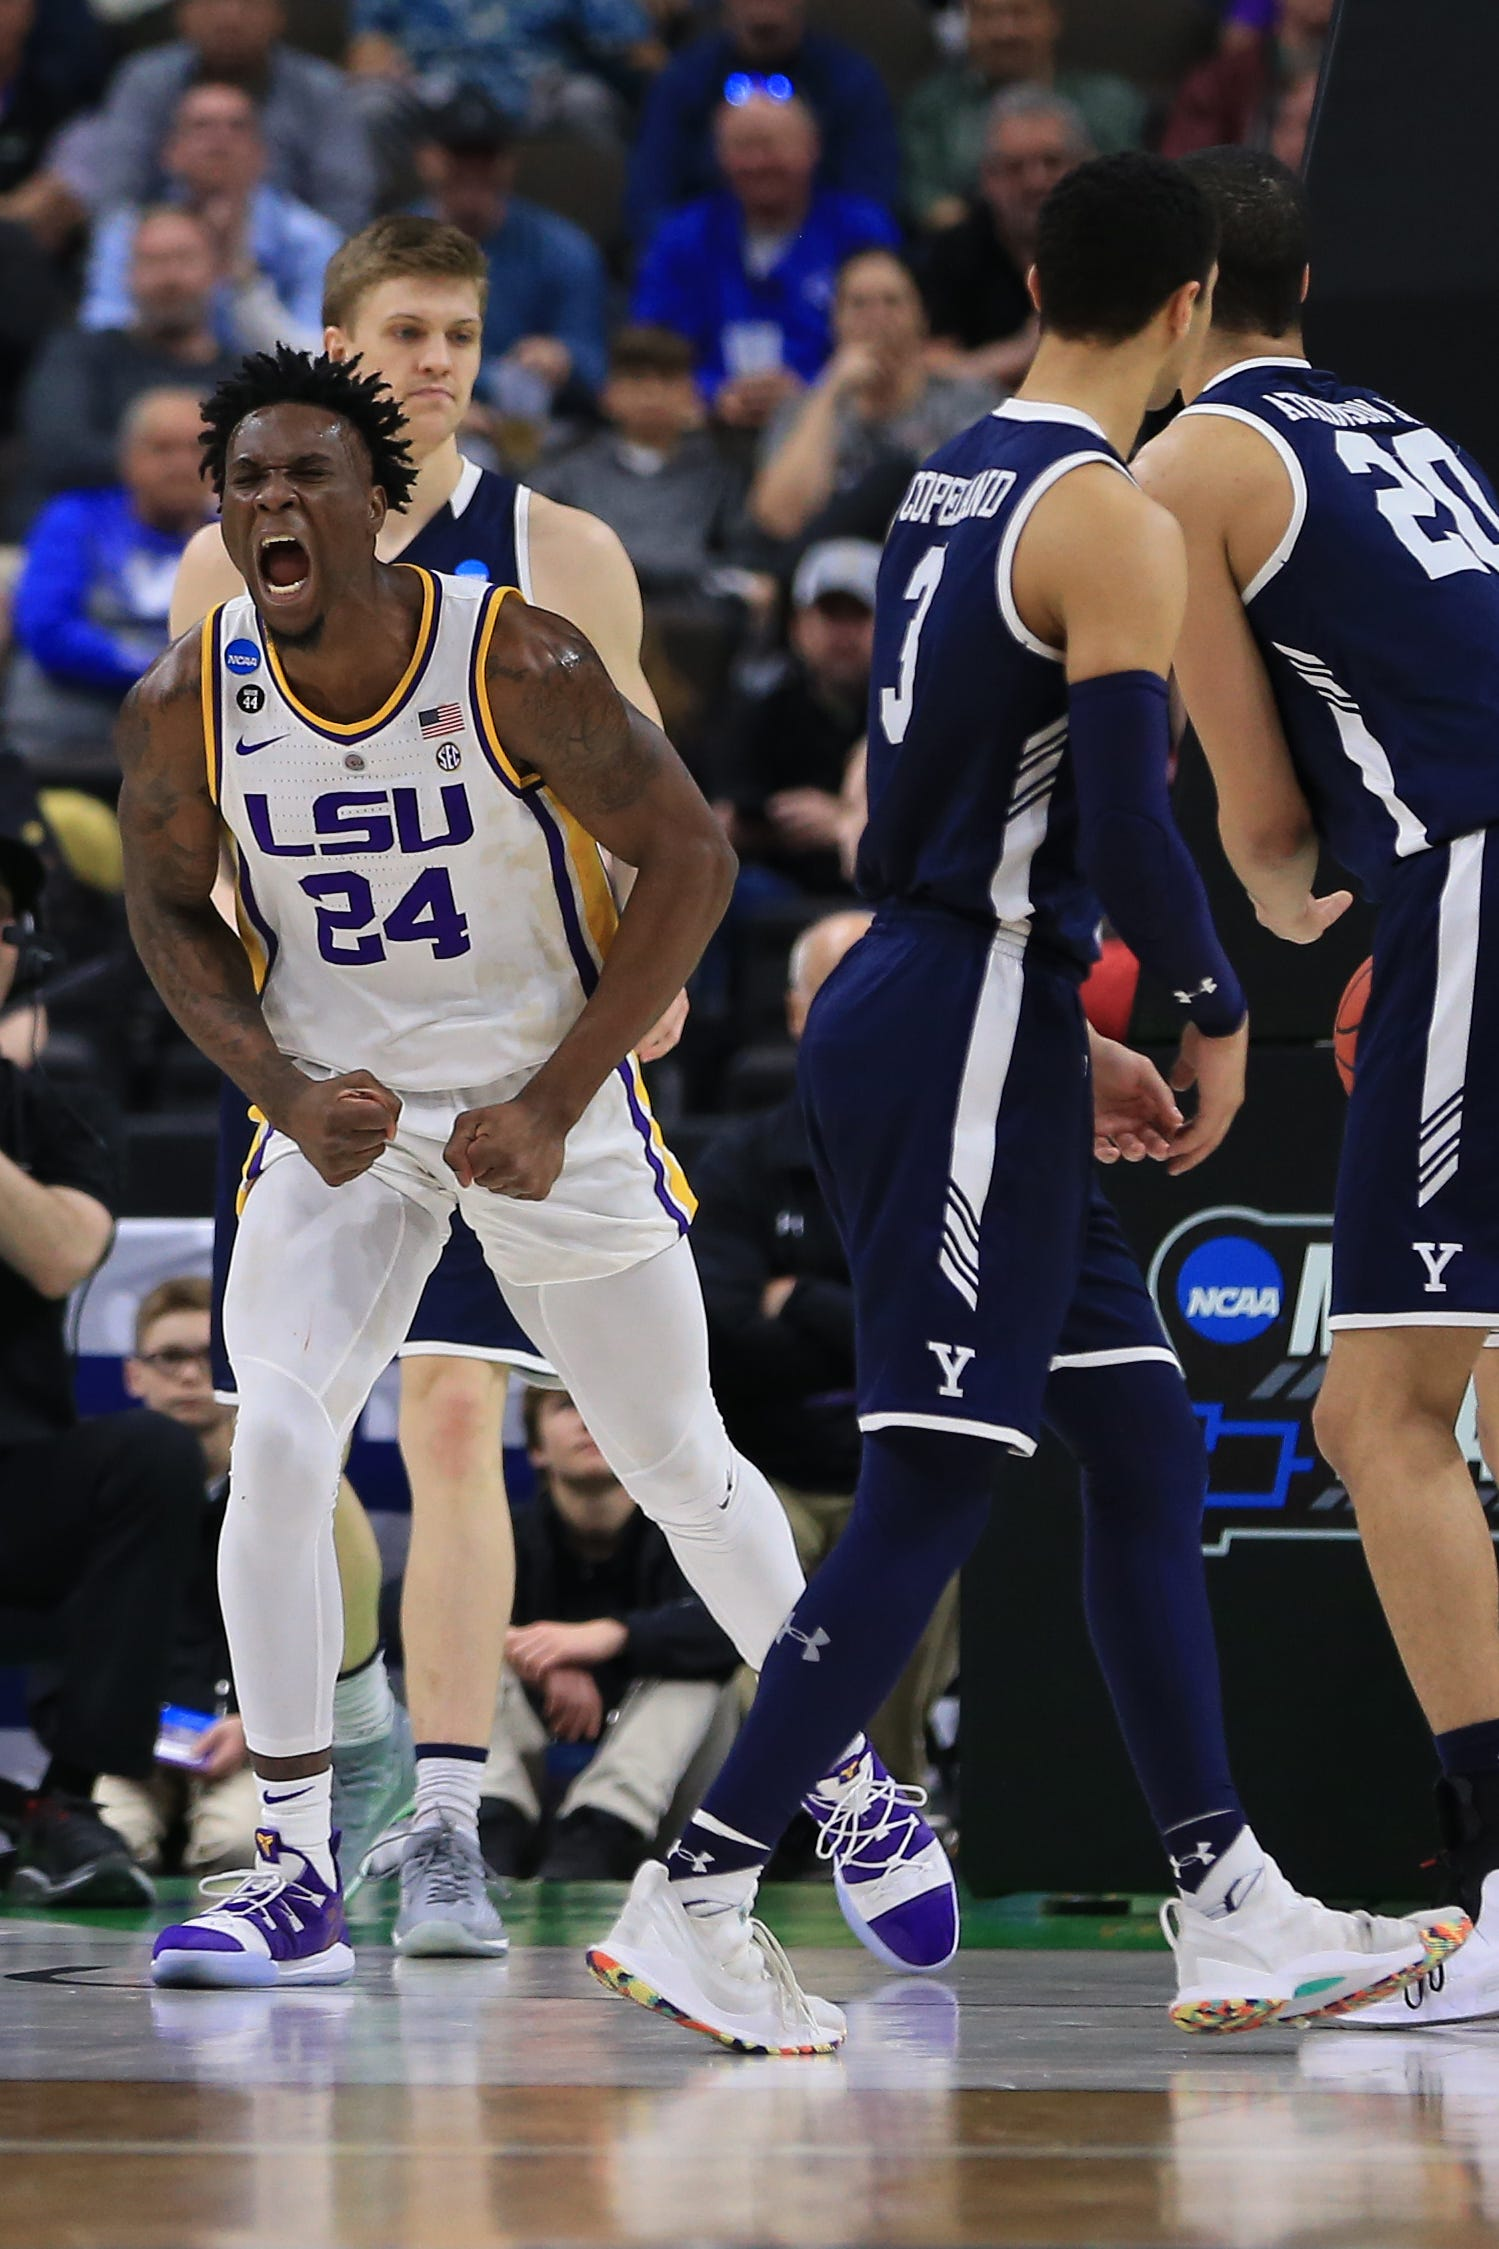 LSU survives Yale and more NCAA tournament action from the first day of March Madness